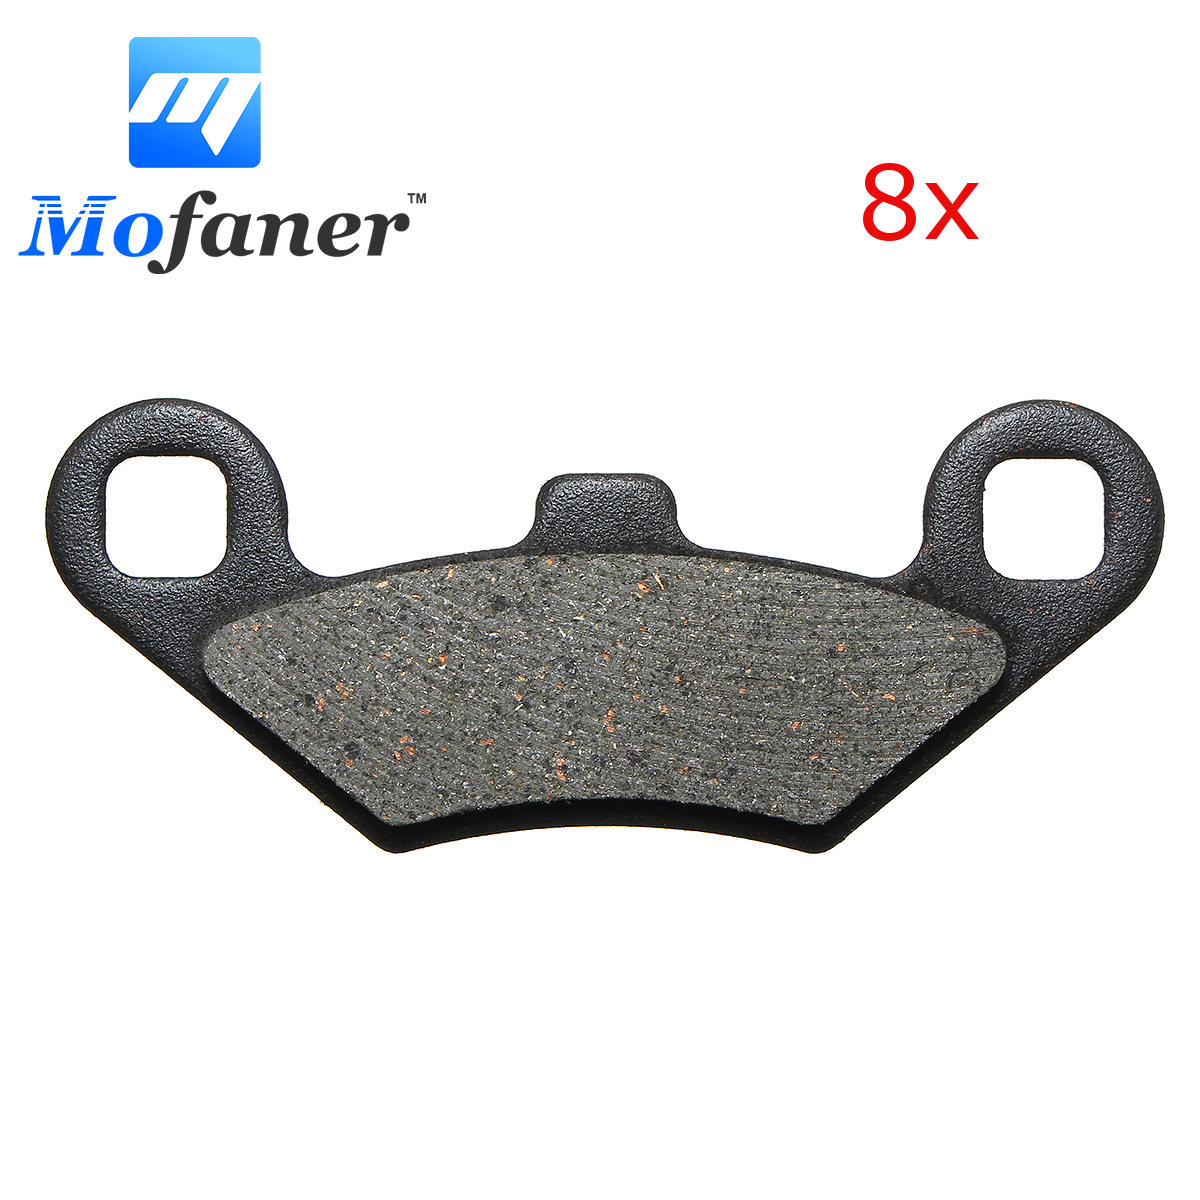 1Set Motorcycle Replacement Front Rear Brake Pads For Polaris RZR 800 RZR 800 S RZR 570 2008-2015 97 x 47 x 7mm 1 set motorcycle front